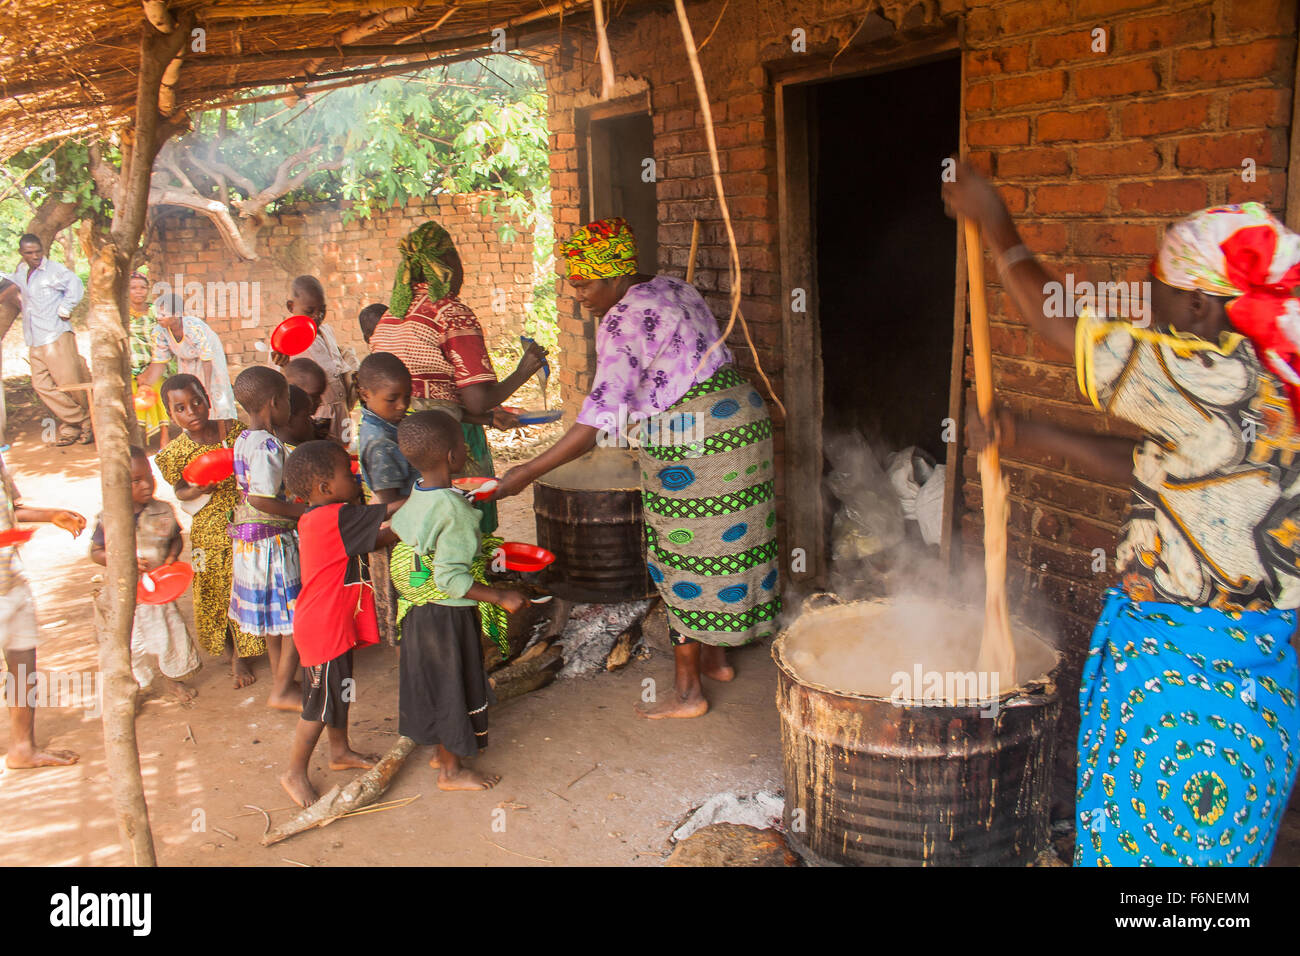 Women from the local church cooking food for school children in a time of hunger in the village of Nyombe, Dedza, - Stock Image